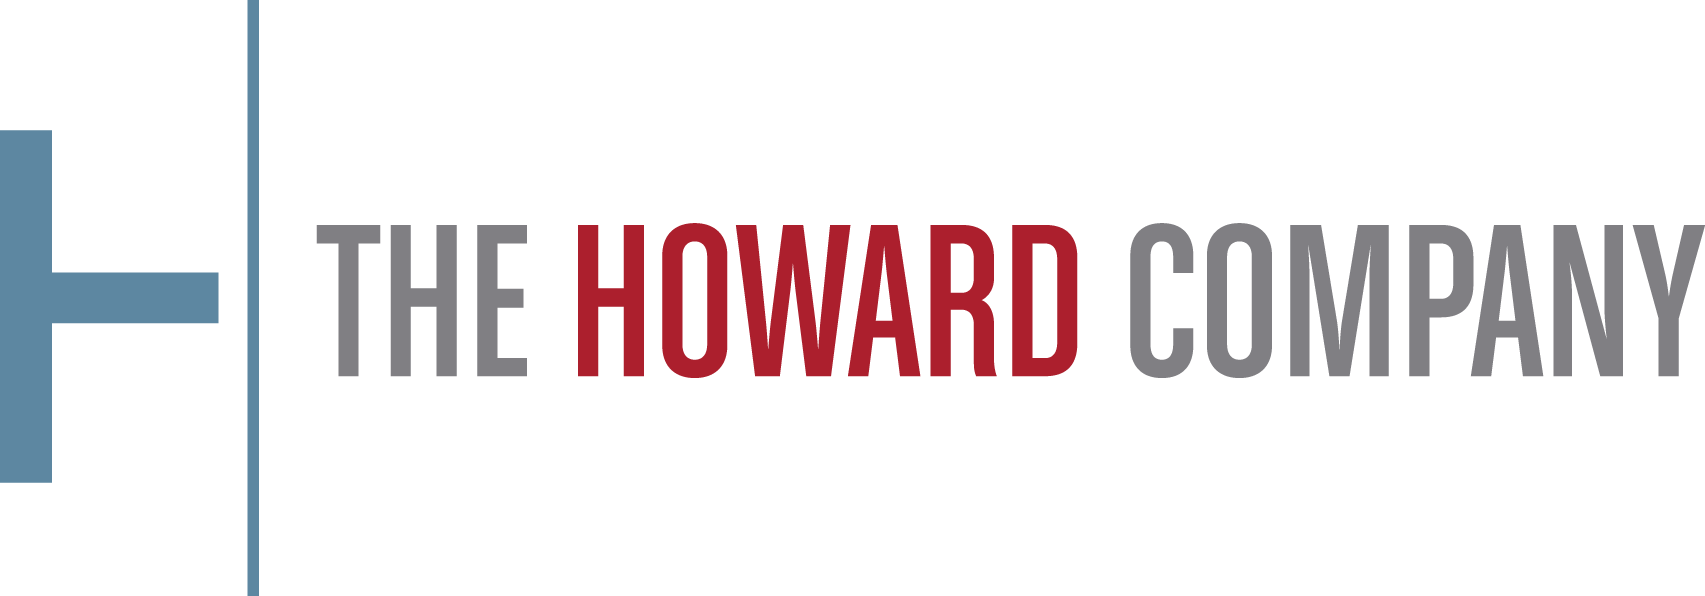 The Howard Companu